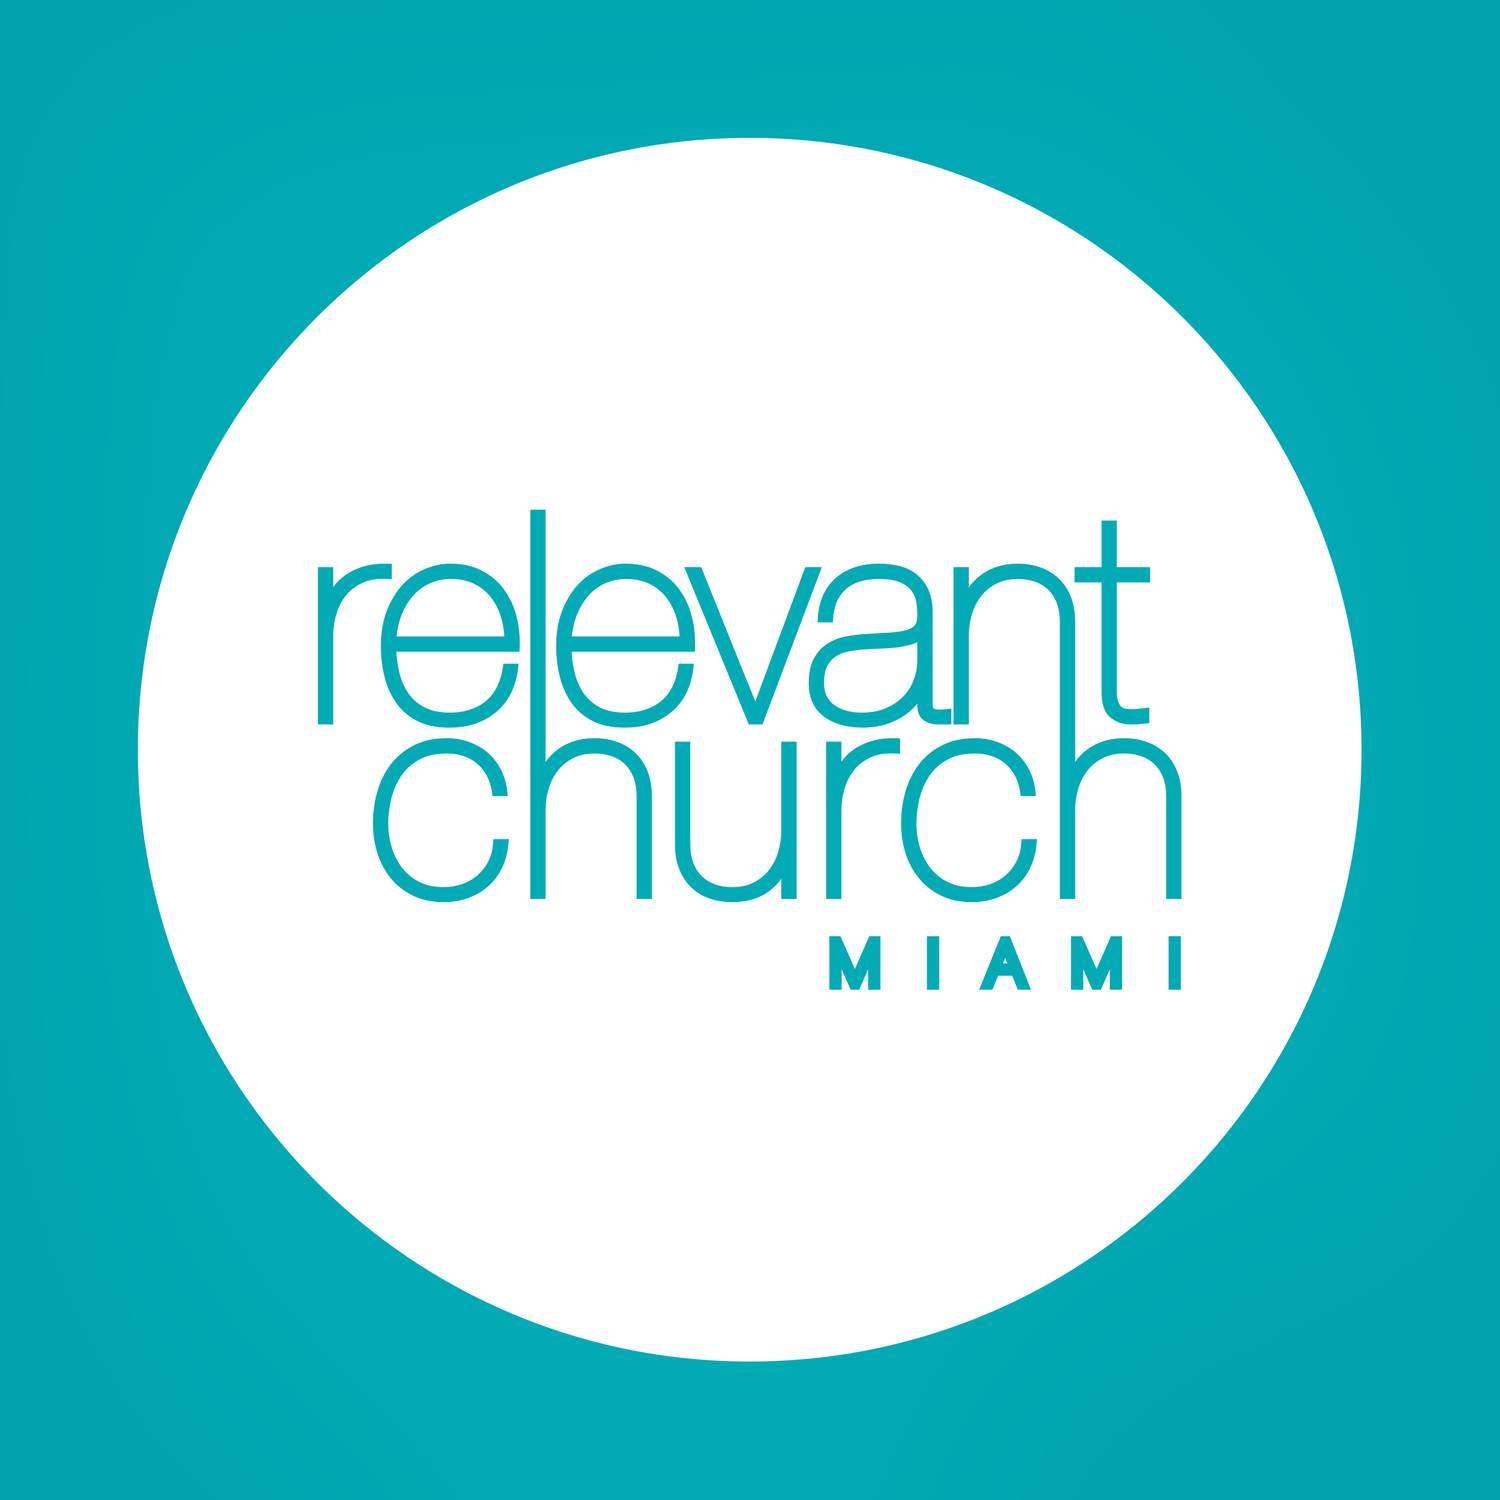 Teachings - Relevant Church Miami